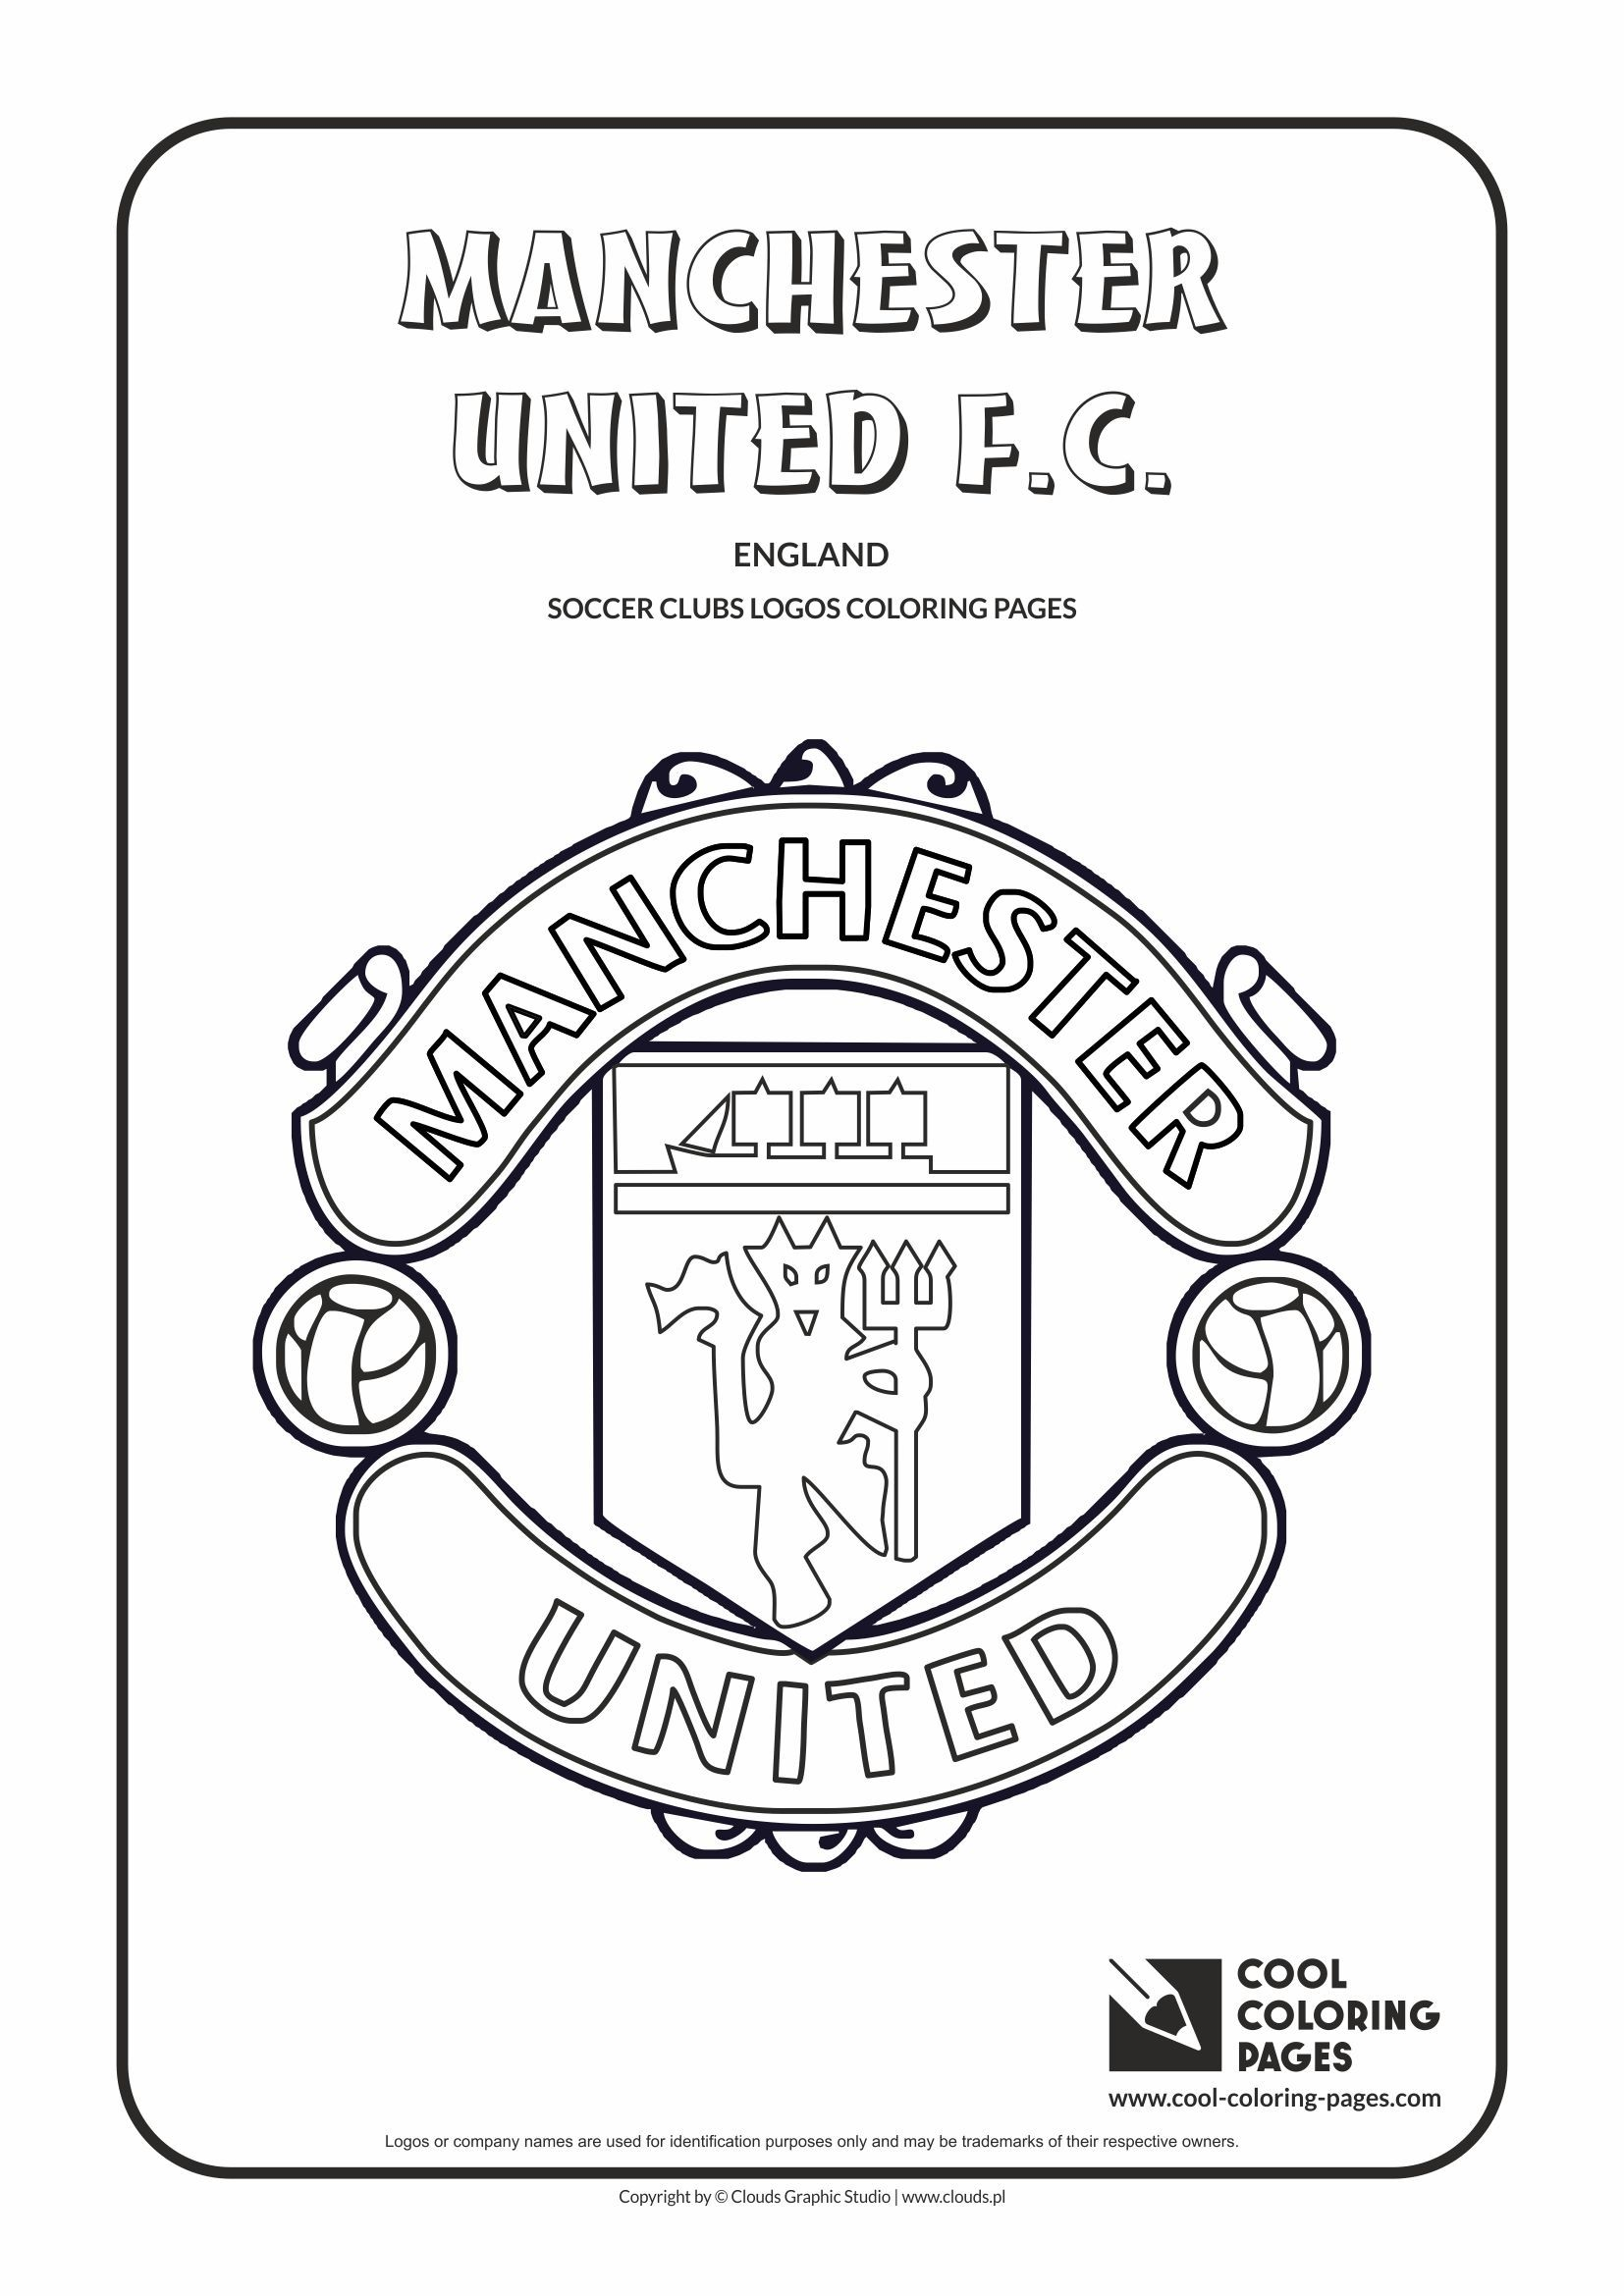 cool coloring pages soccer club logos manchester united f c